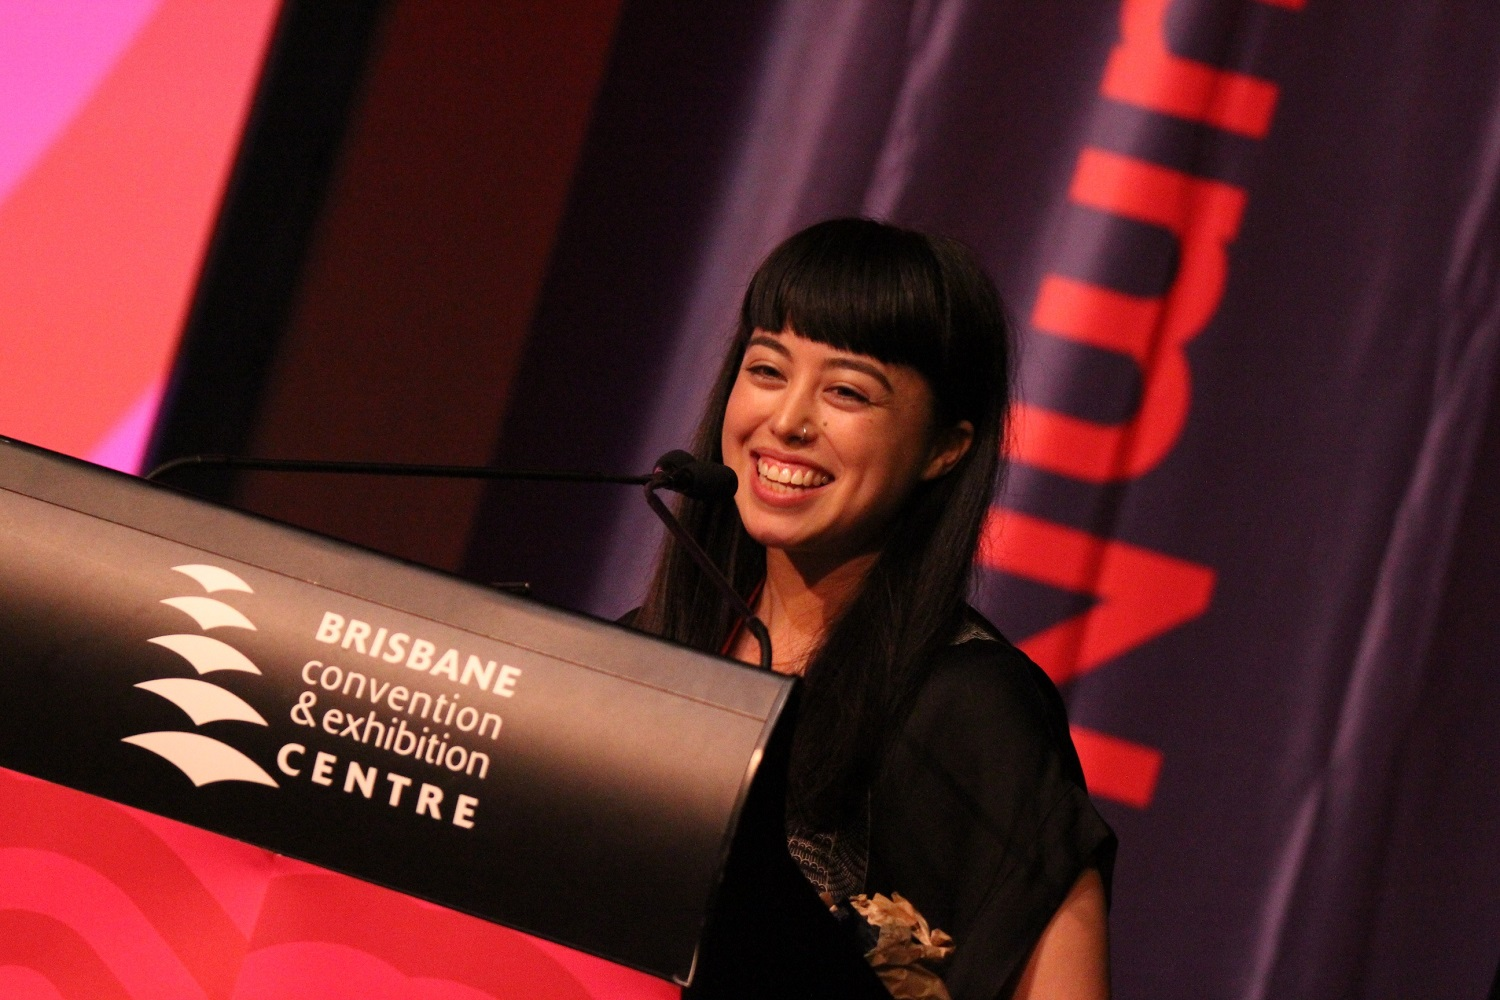 Slightly off-center (tilted to the right) image of a woman with dark hair smiling widely standing behind a podium that says Brisbane convention & exhibition centre.